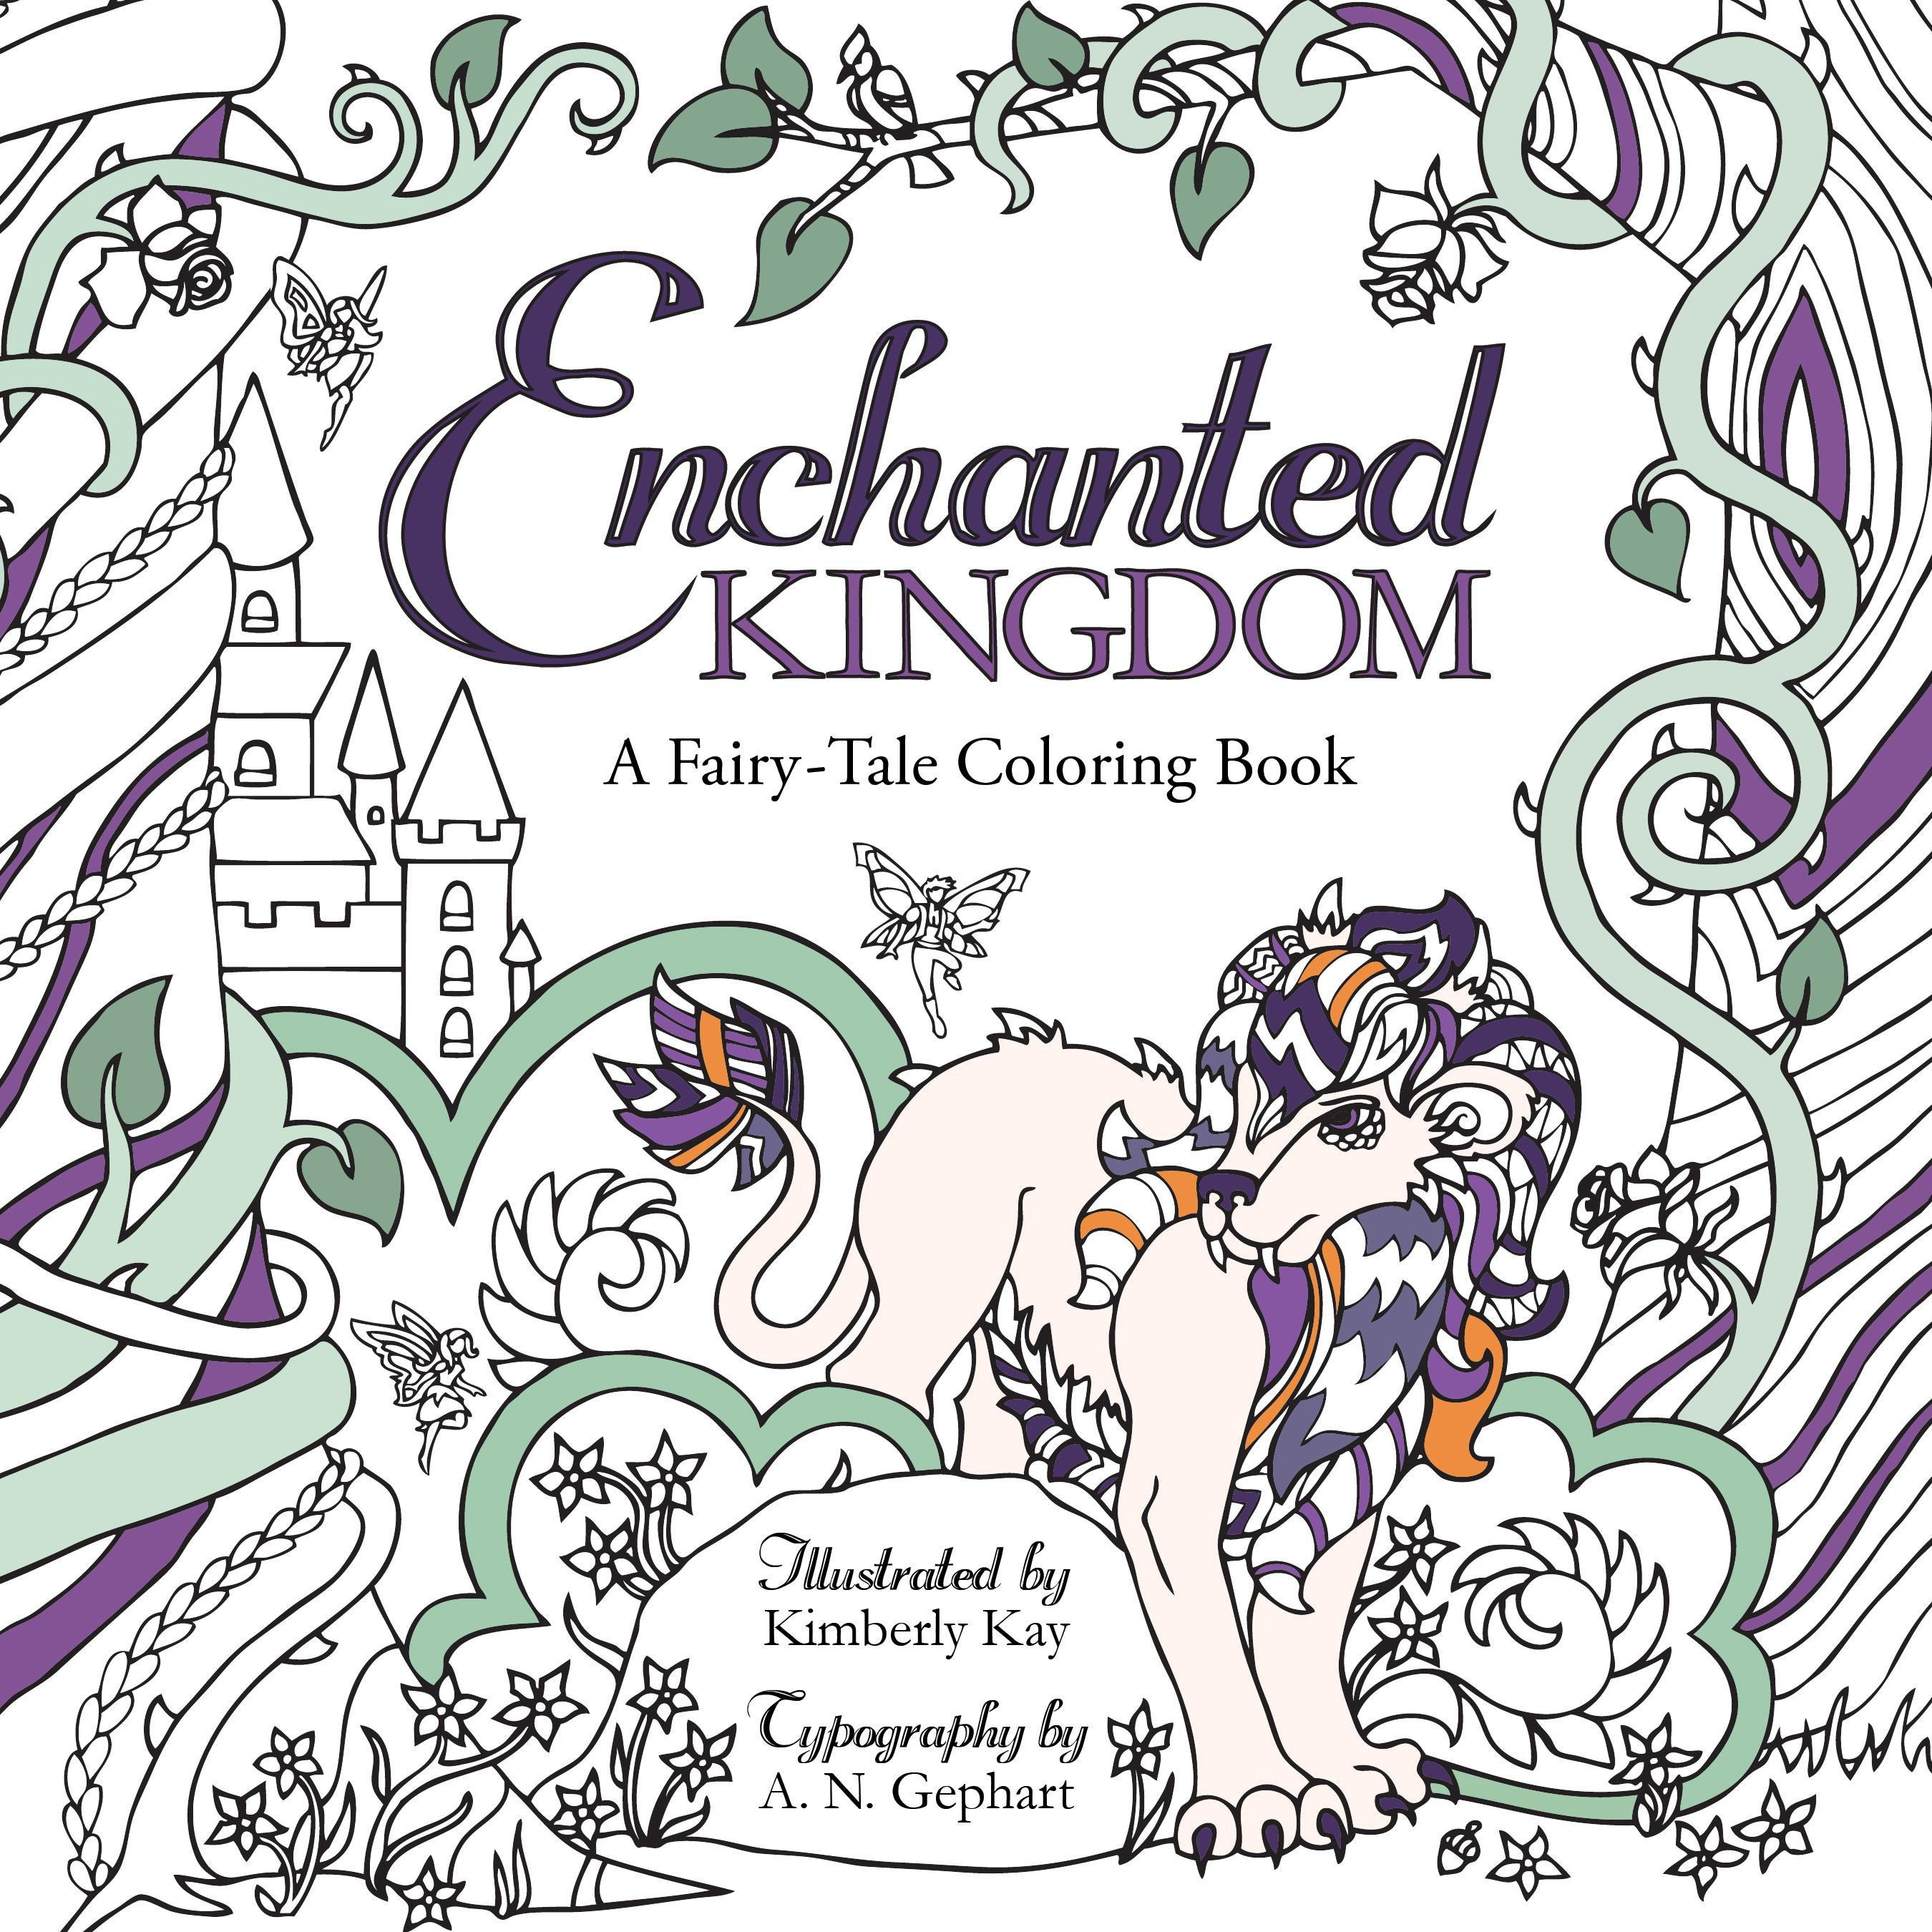 Enchanted Kingdom: A Fairy-Tale Coloring Book (Paperback)